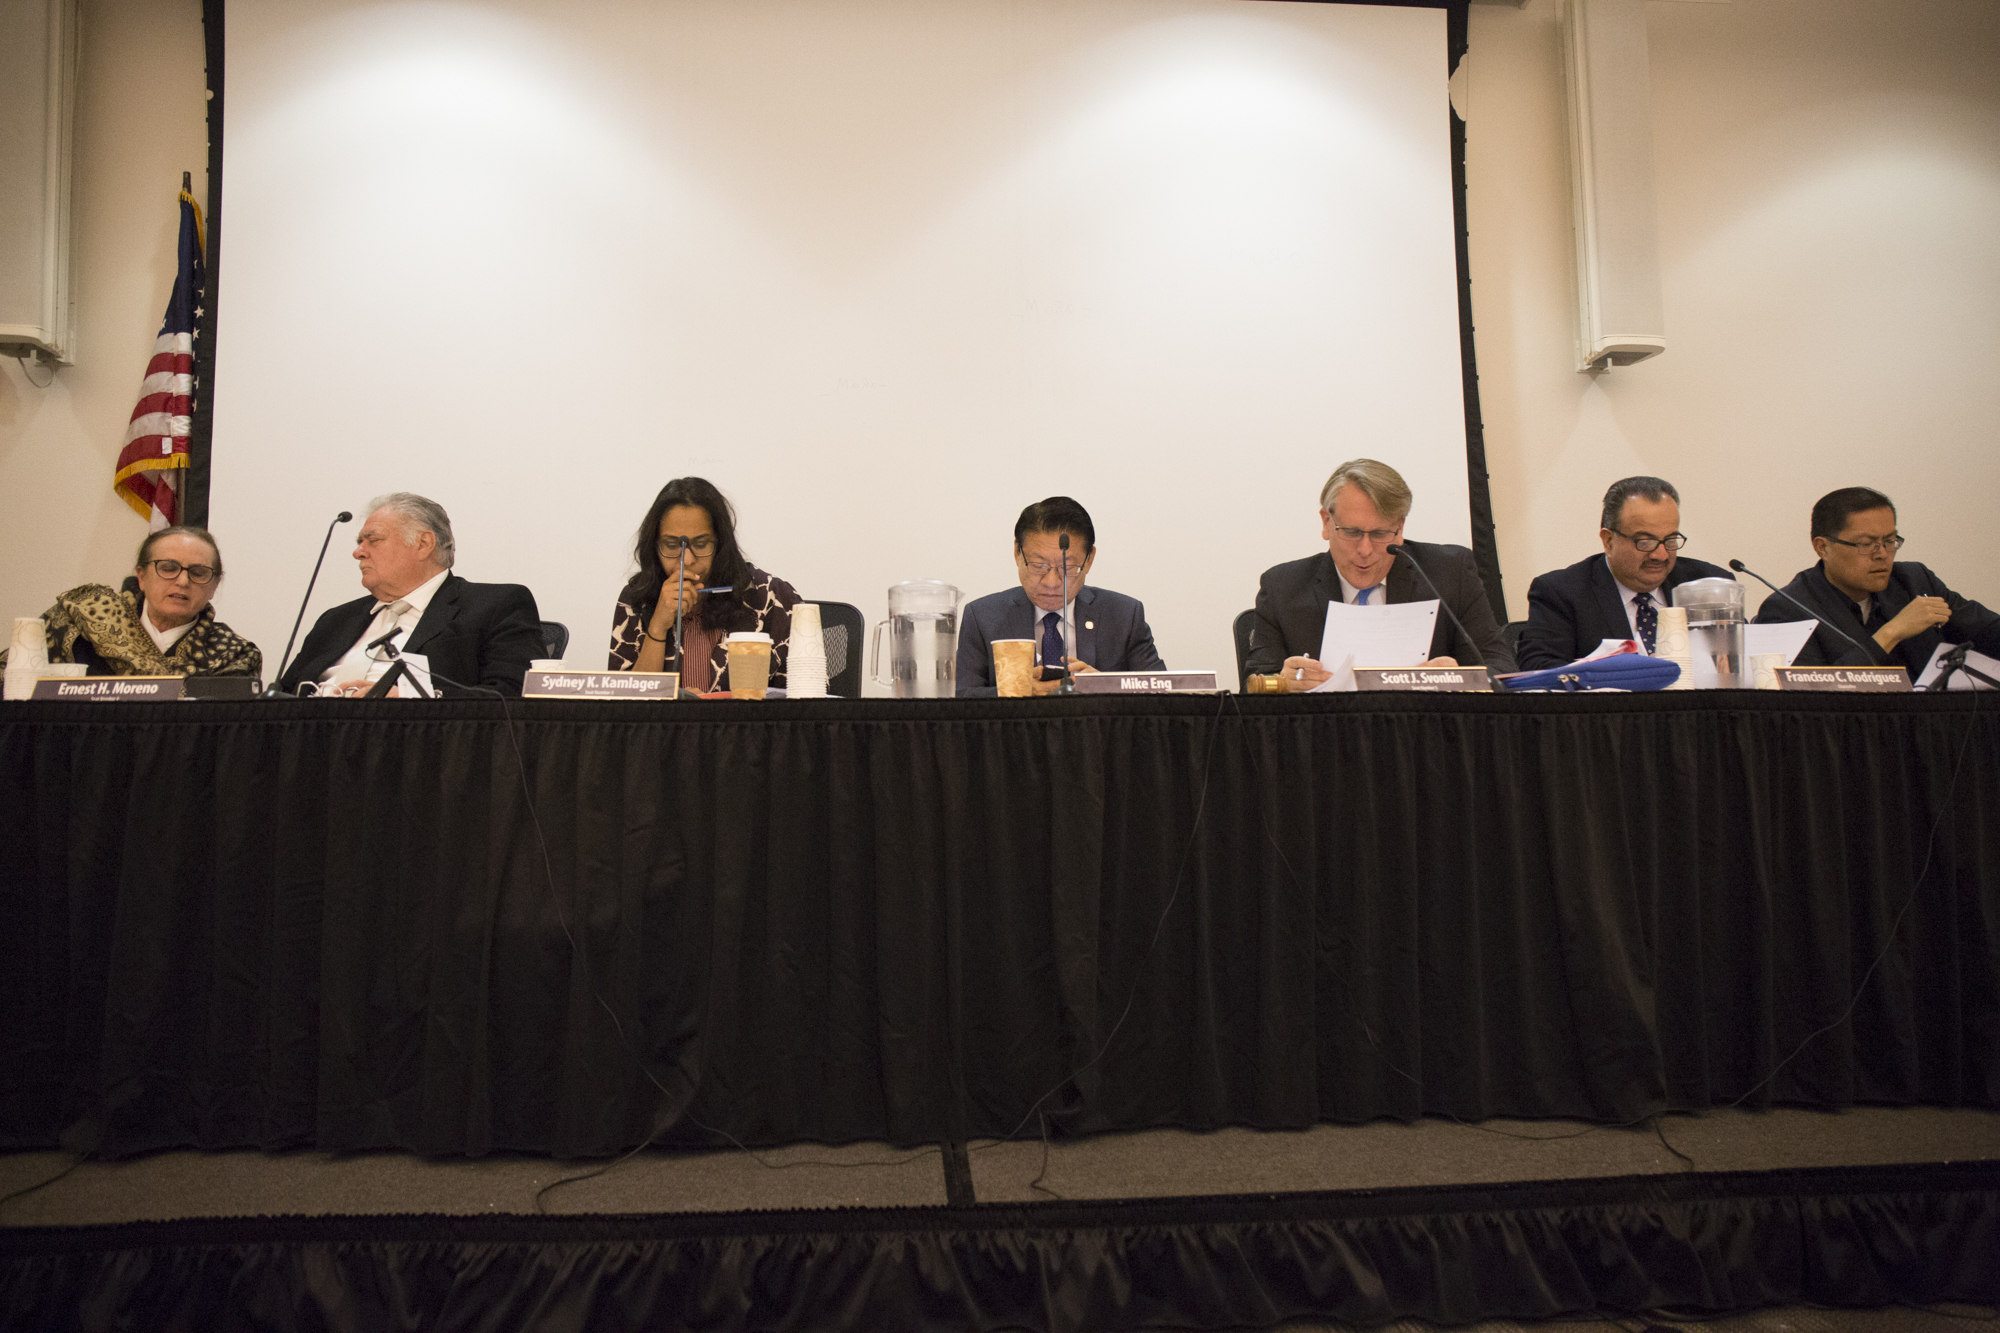 Board of Trustees approve funding for adult education